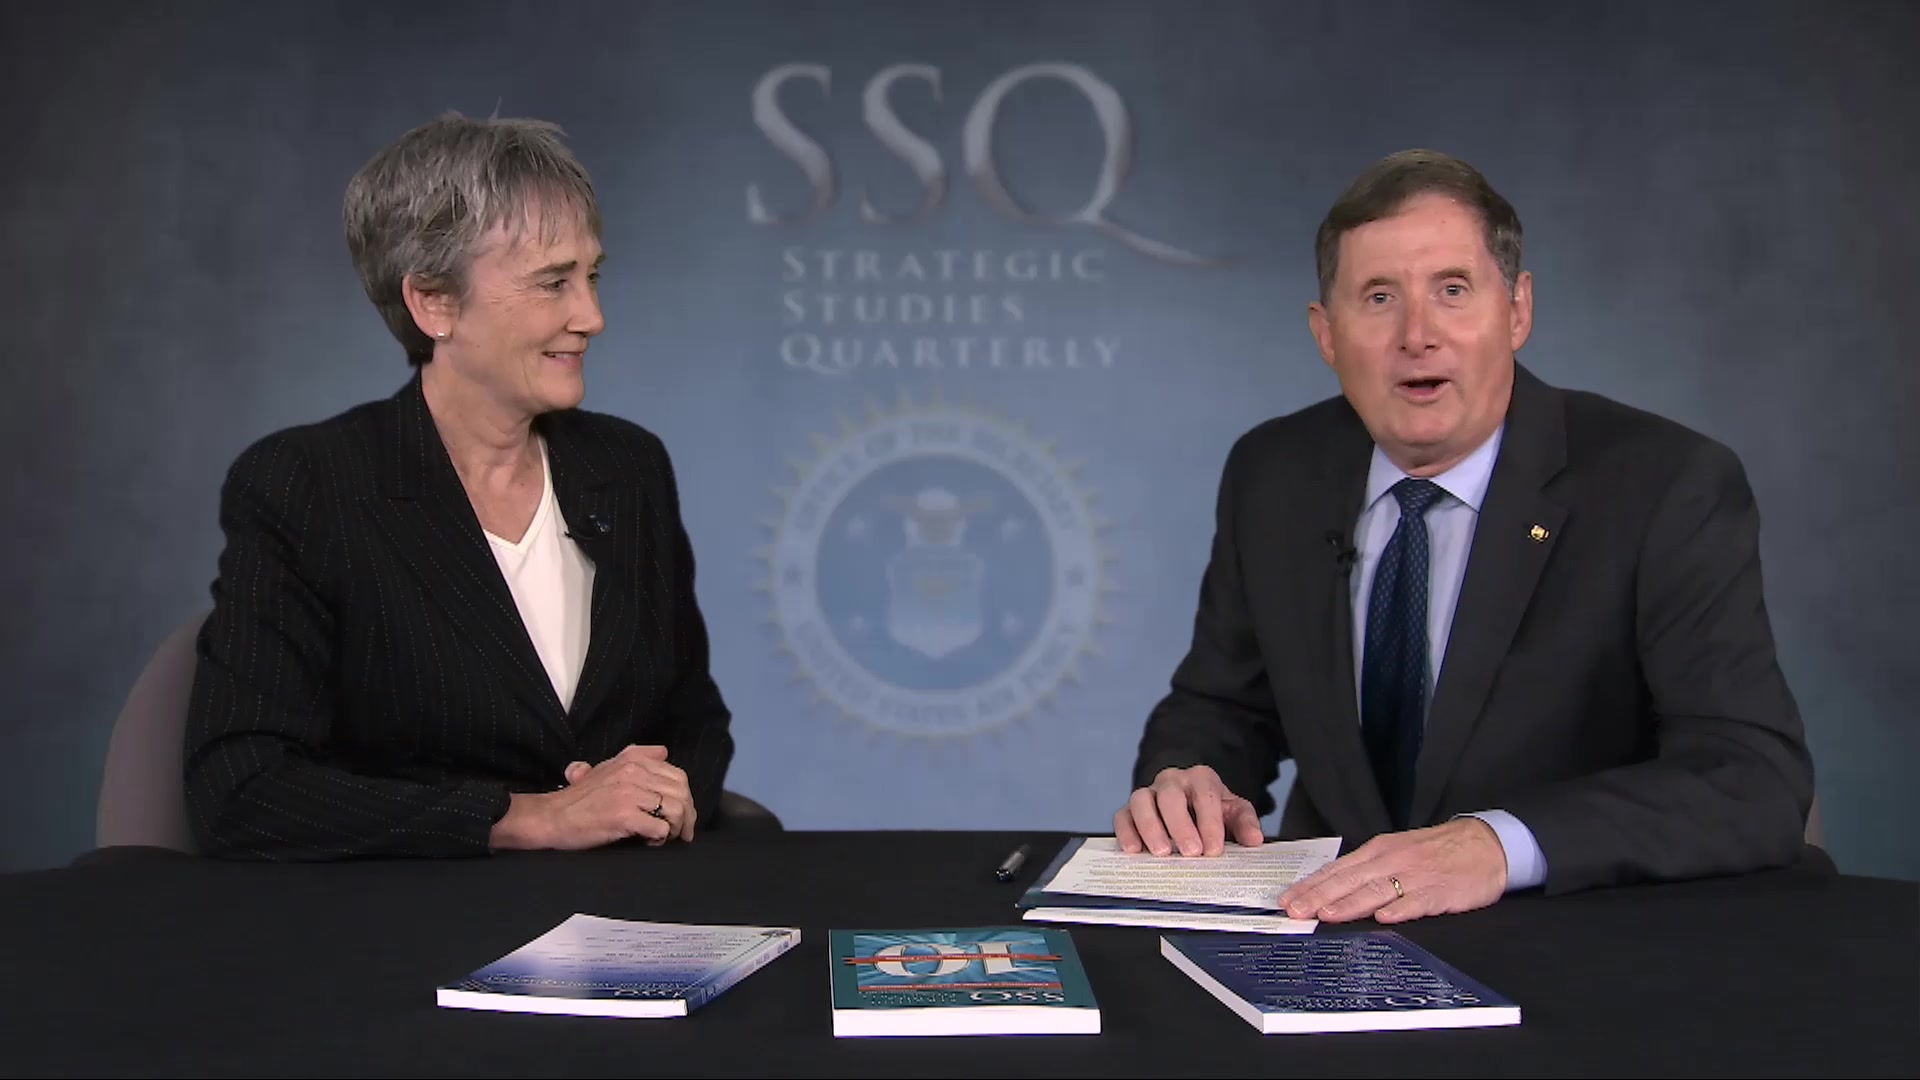 An interview with the Secretary of the Air Force, the Honorable Heather Wilson. The interview is moderated by the editor of Strategic Studies Quarterly (SSQ) and highlights current national security issues facing the Air Force.